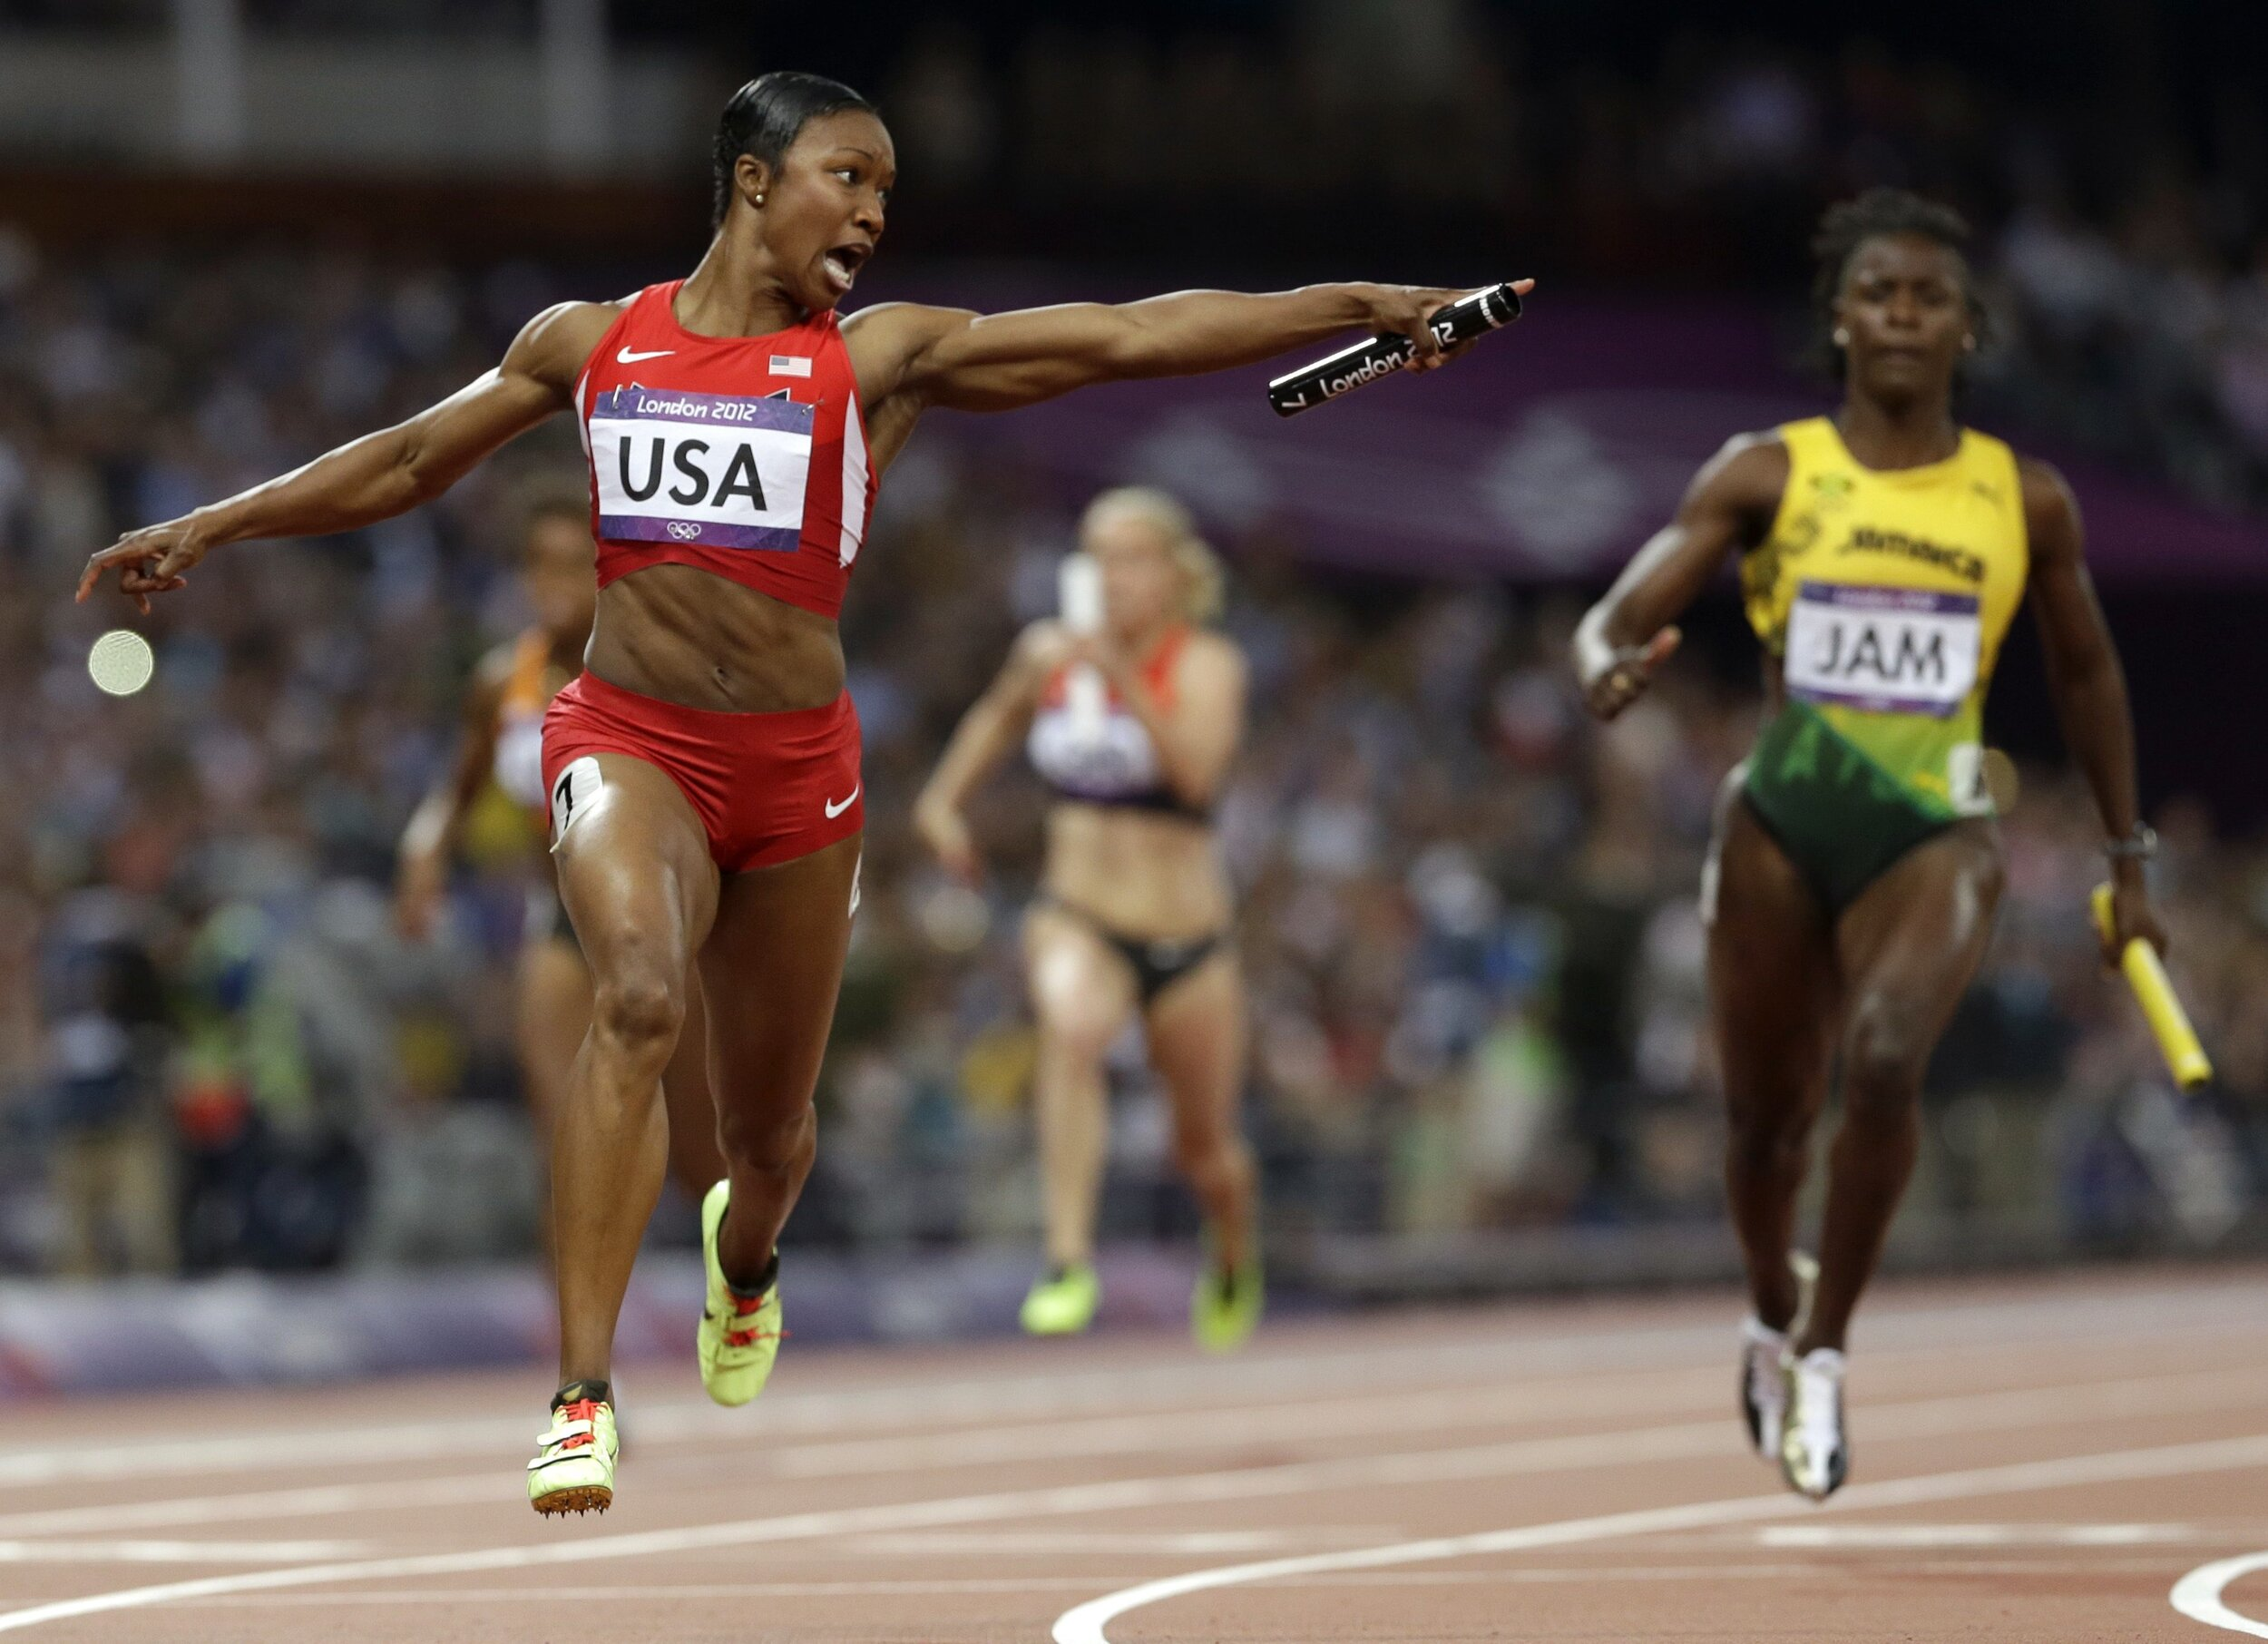 """Ep 1: Carmelita Jeter - The Fastest Woman Alive. Sprinter Carmelita Jeter won gold, silver, and bronze medals at the 2012 London Olympics. Oh, and she's also nicknamed the """"The World's Fastest Woman"""" for having 3 of the top 10 fastest times in the women's 100m. Carmelita went from starting track in high school, going to a Division II college, to becoming a world class sprinter. She talks about what it took to get there and her interest in motivating others. Carmelita is also the associate head coach for the Track & Field team at Missouri State University.EPISODE DROPS OCTOBER 28THLISTEN TO THE EPISODE"""